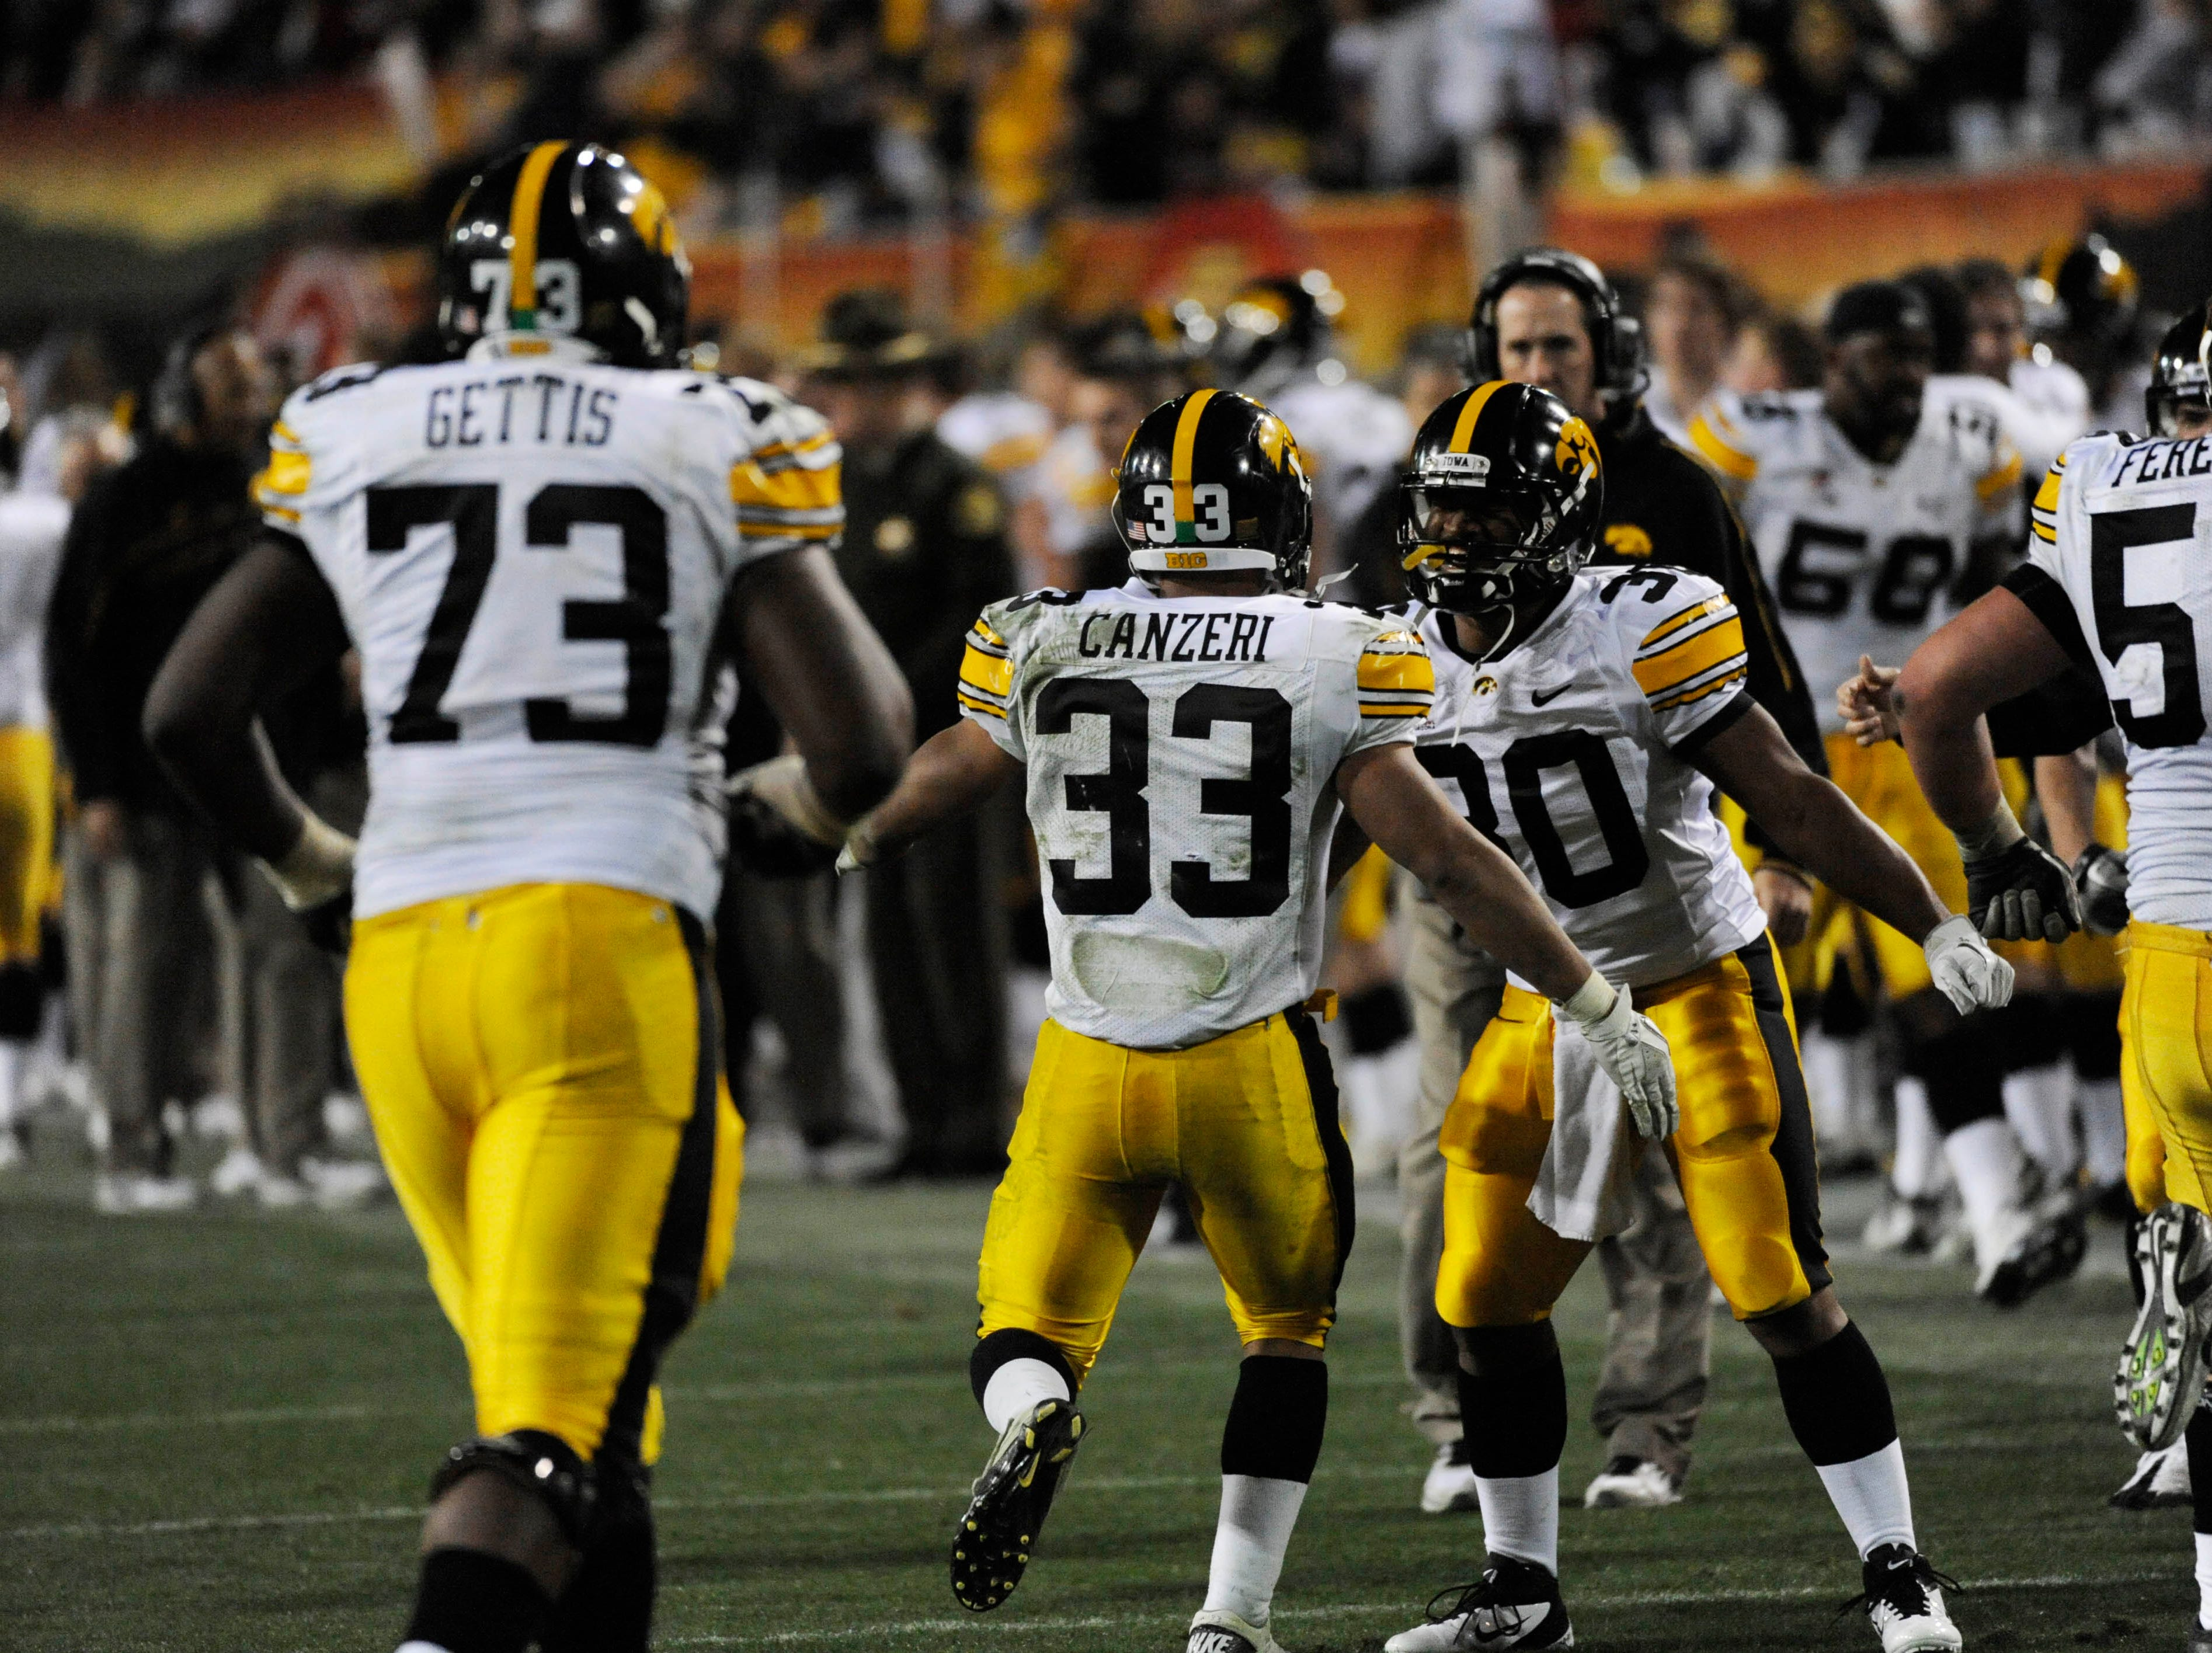 Dec 30, 2011; Tempe, AZ, USA; Iowa Hawkeyes running back Jordan Canzeri (33) and teammates celebrate his touchdown against Oklahoma Sooners during the second half of the 2011 Insight Bowl at the Sun Devil Stadium. Mandatory Credit: Richard Mackson-USA TODAY Sports